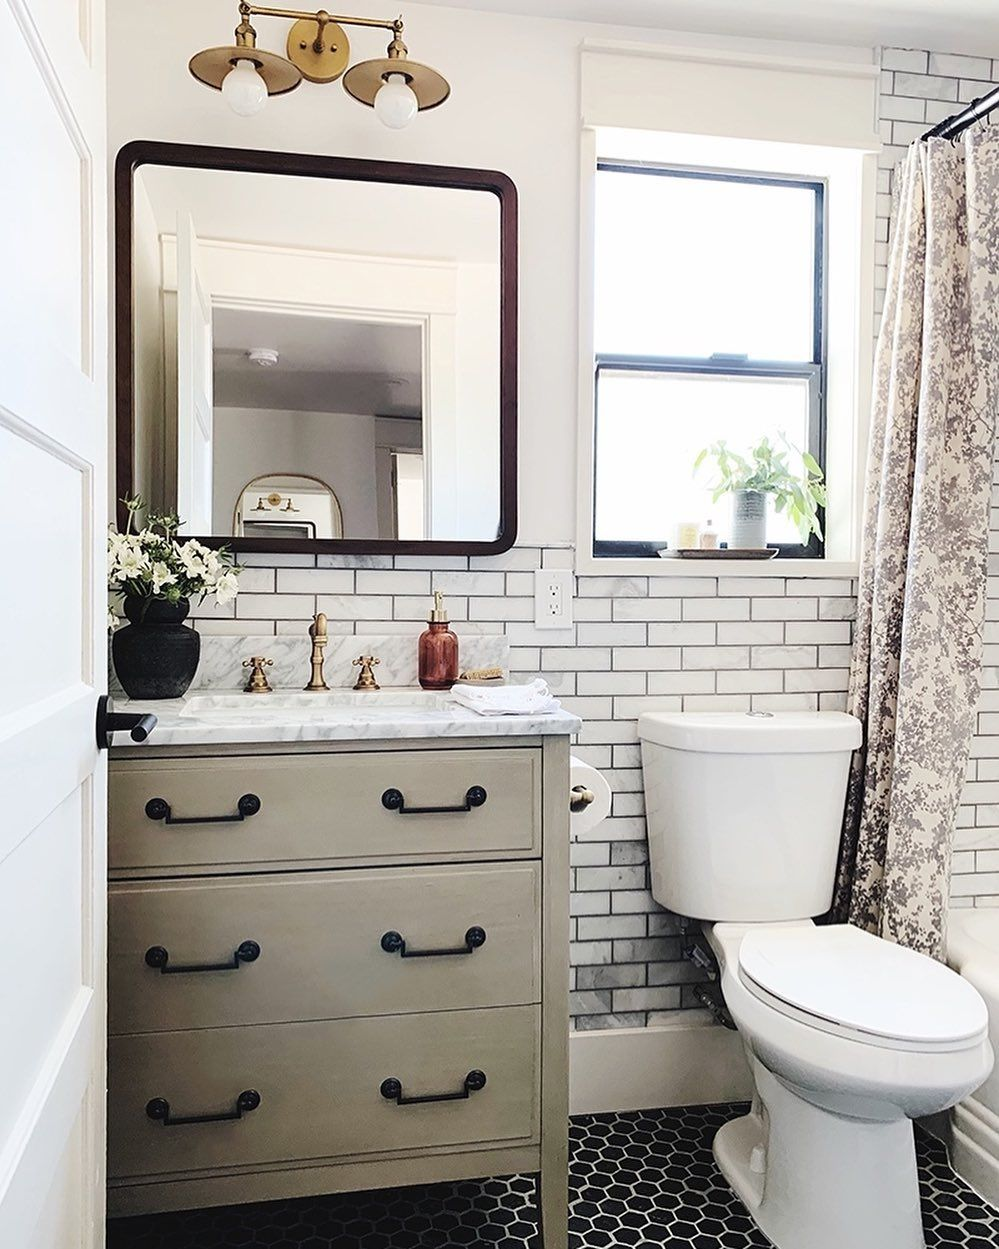 Jenny Komenda On Instagram Adding A Bathroom Is Always A Good Idea For Resale If You Can Manage To Carve Out A Add A Bathroom Guest Bathroom Evergreen House